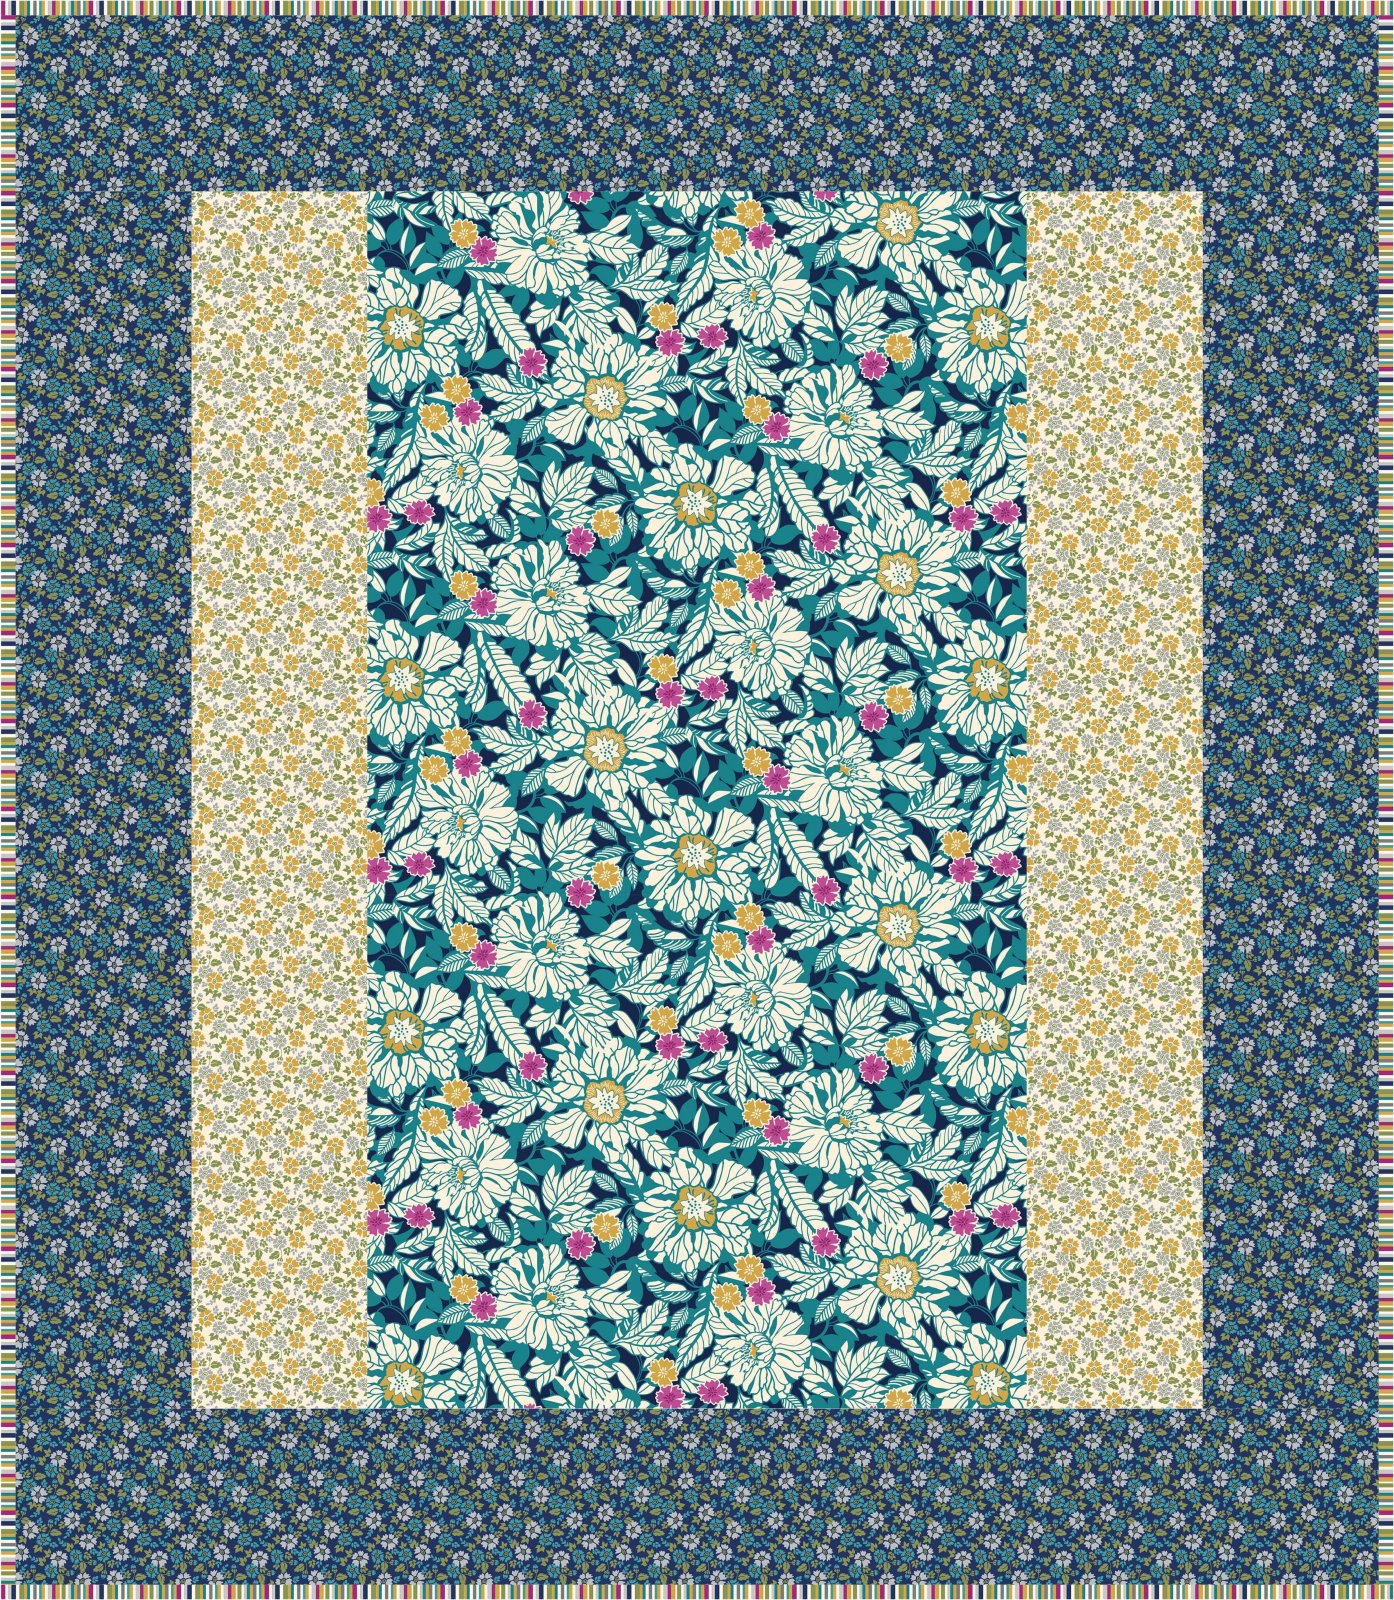 Blue Willowberry 1 Hour Quilt Kit